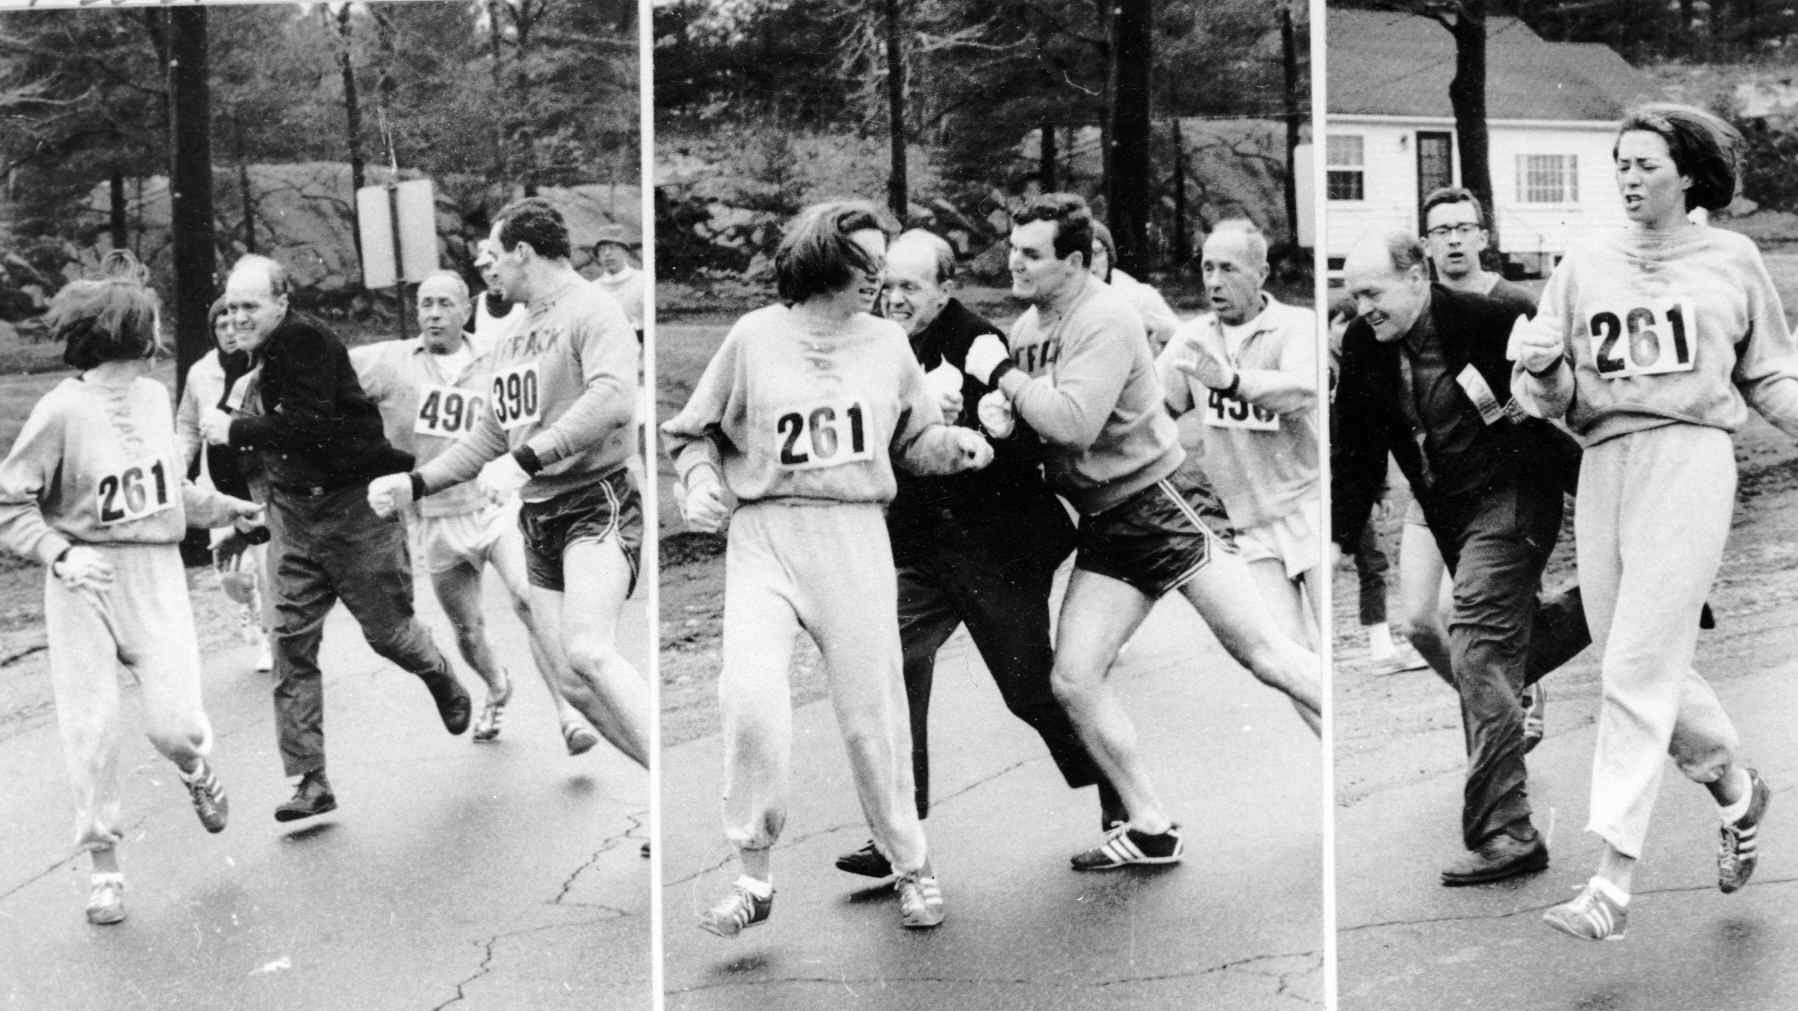 Boston Marathon official Jock Semple tries to eject Kathrine Switzer (261) in 1967, but Tom Miller runs interference and blocks him out.